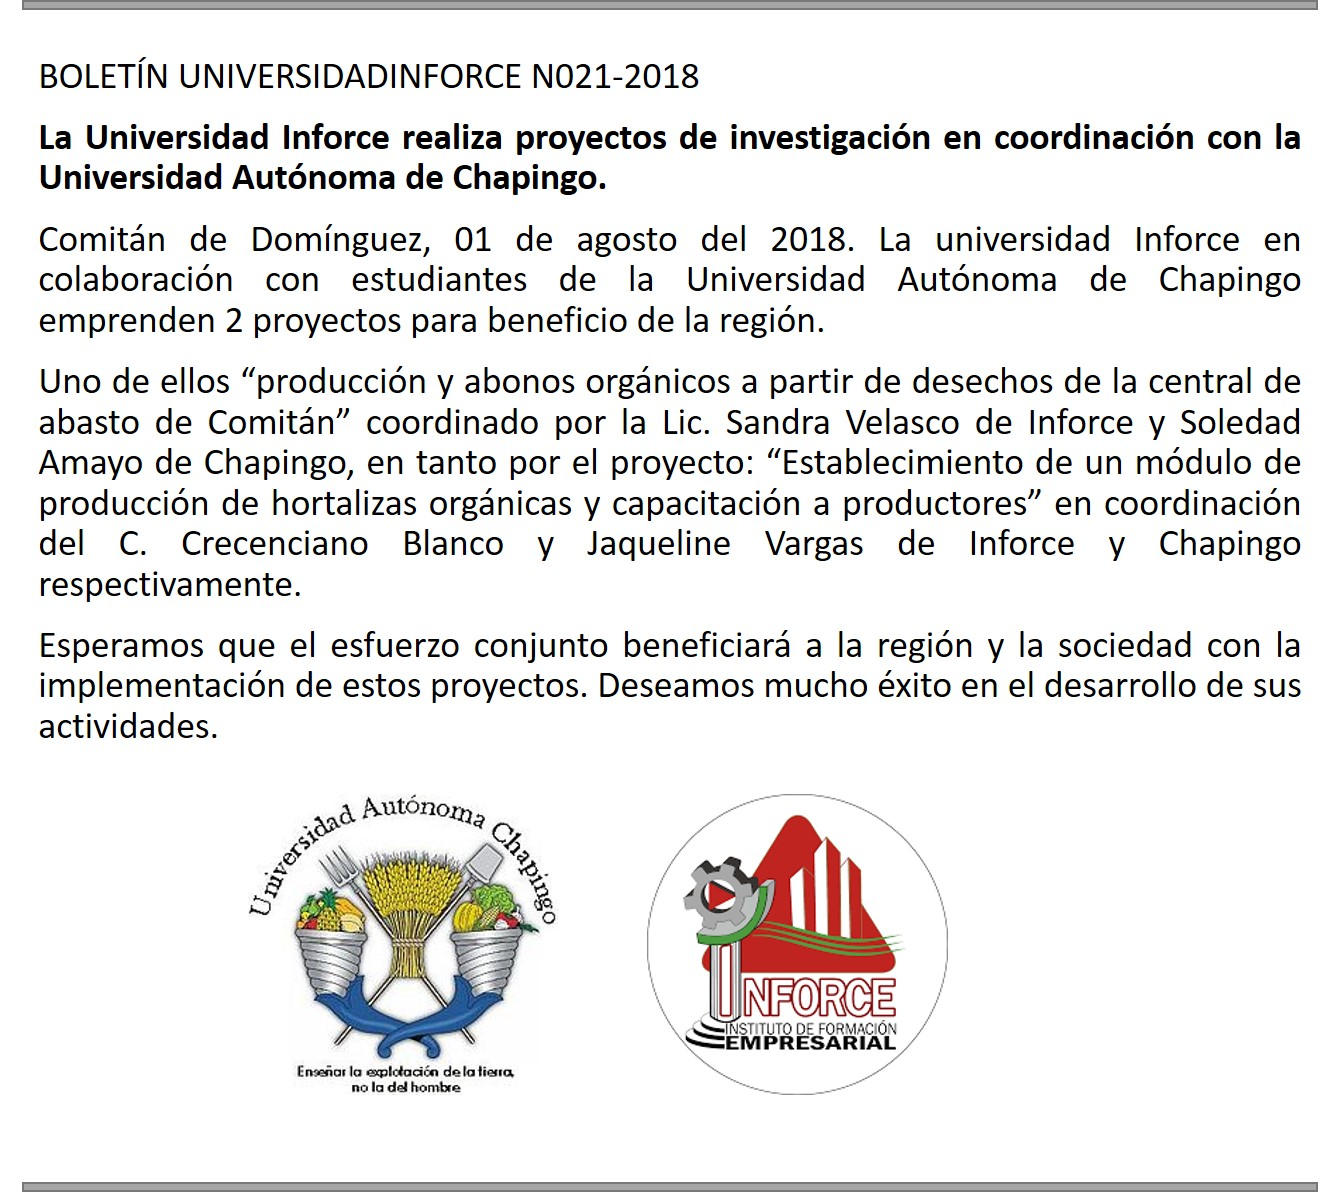 boletin-universidad-inforce-n021-2018.jpg